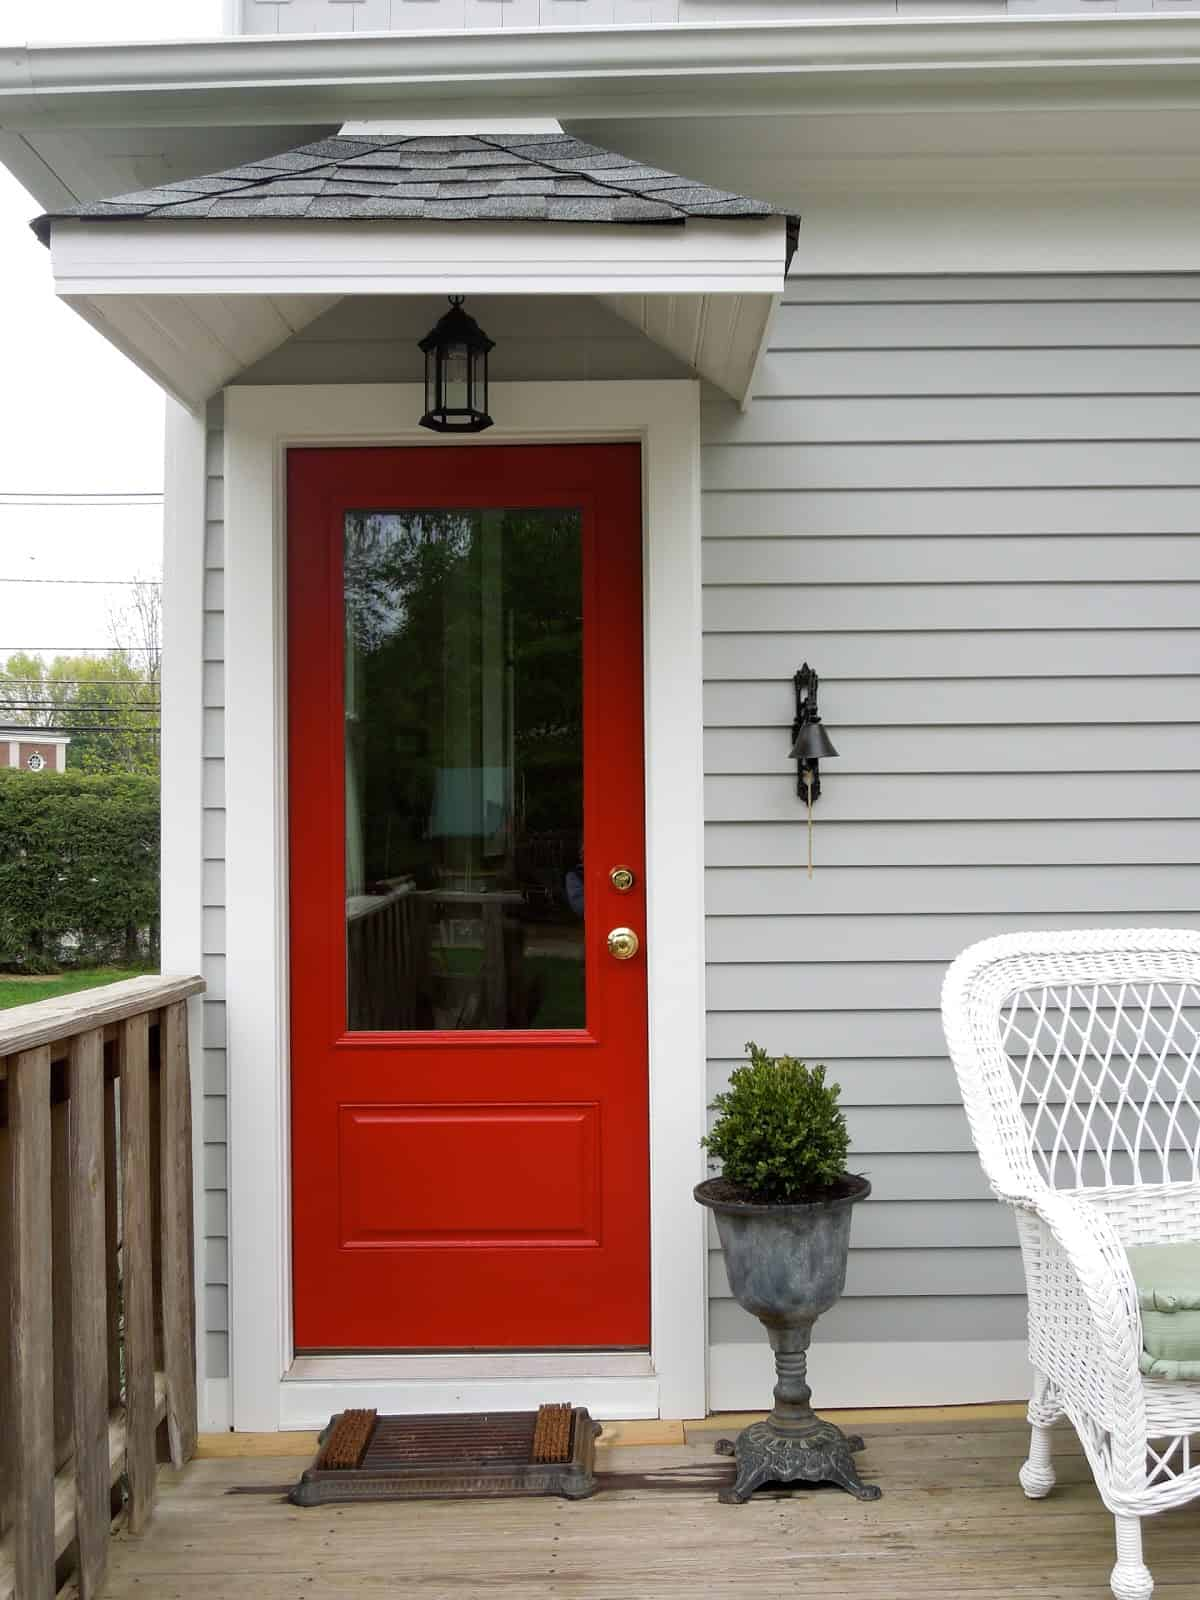 Back Door Designs back door designs remarkable front and doors 12 Repaint Your Back Door